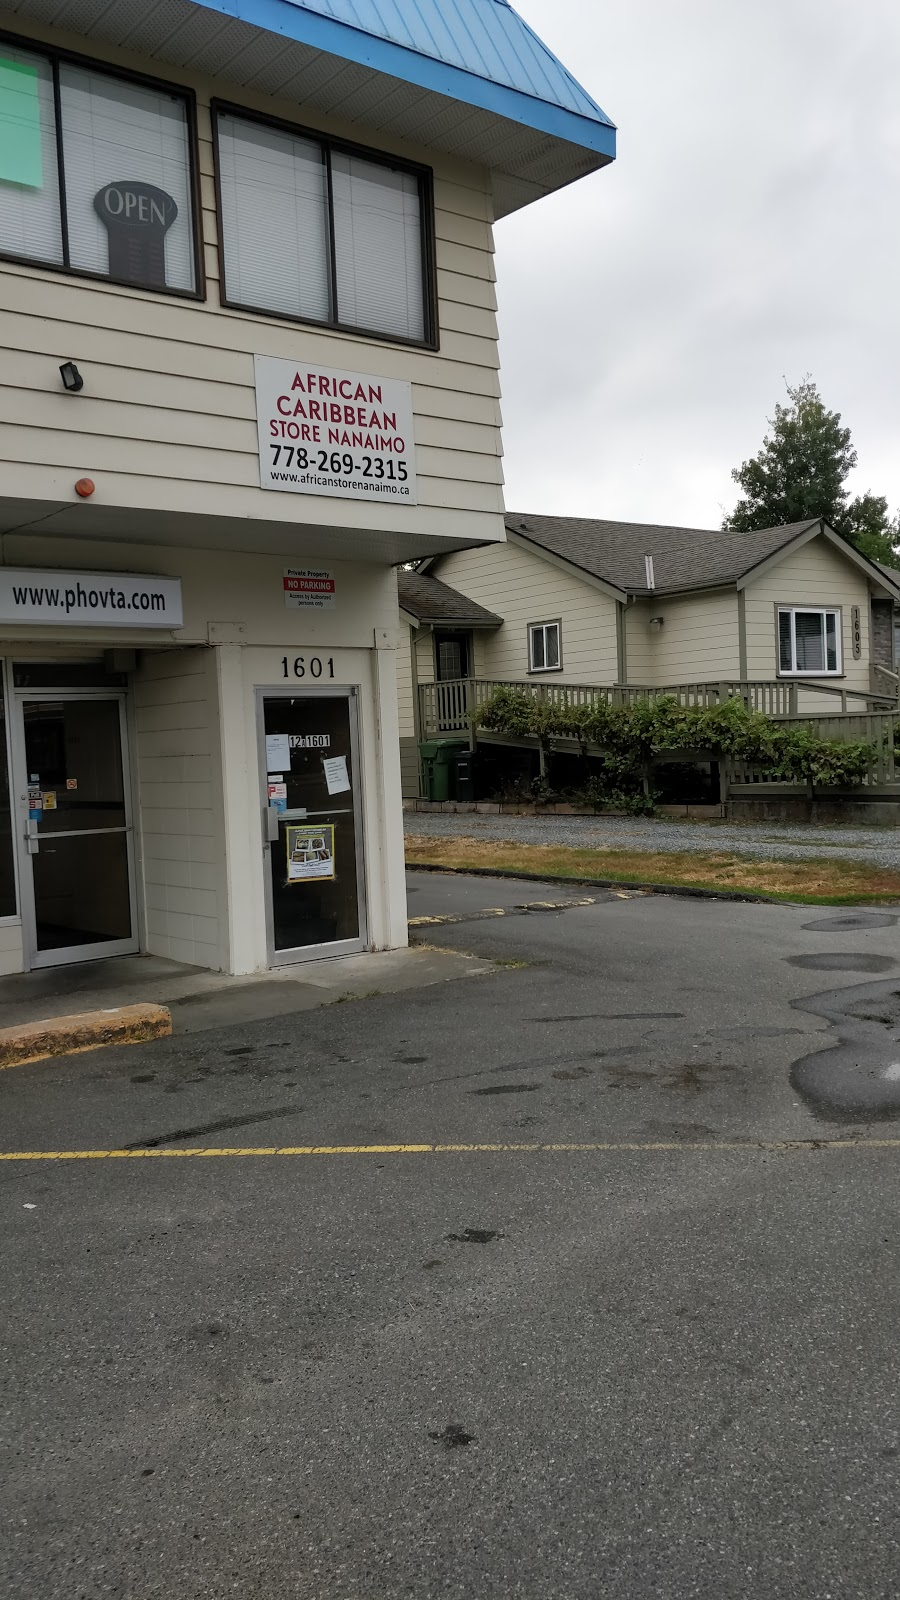 Alpha African-Caribbean Food Store   store   1601 Bowen Rd #12A, Nanaimo, BC V9S 1G5, Canada   7782692315 OR +1 778-269-2315